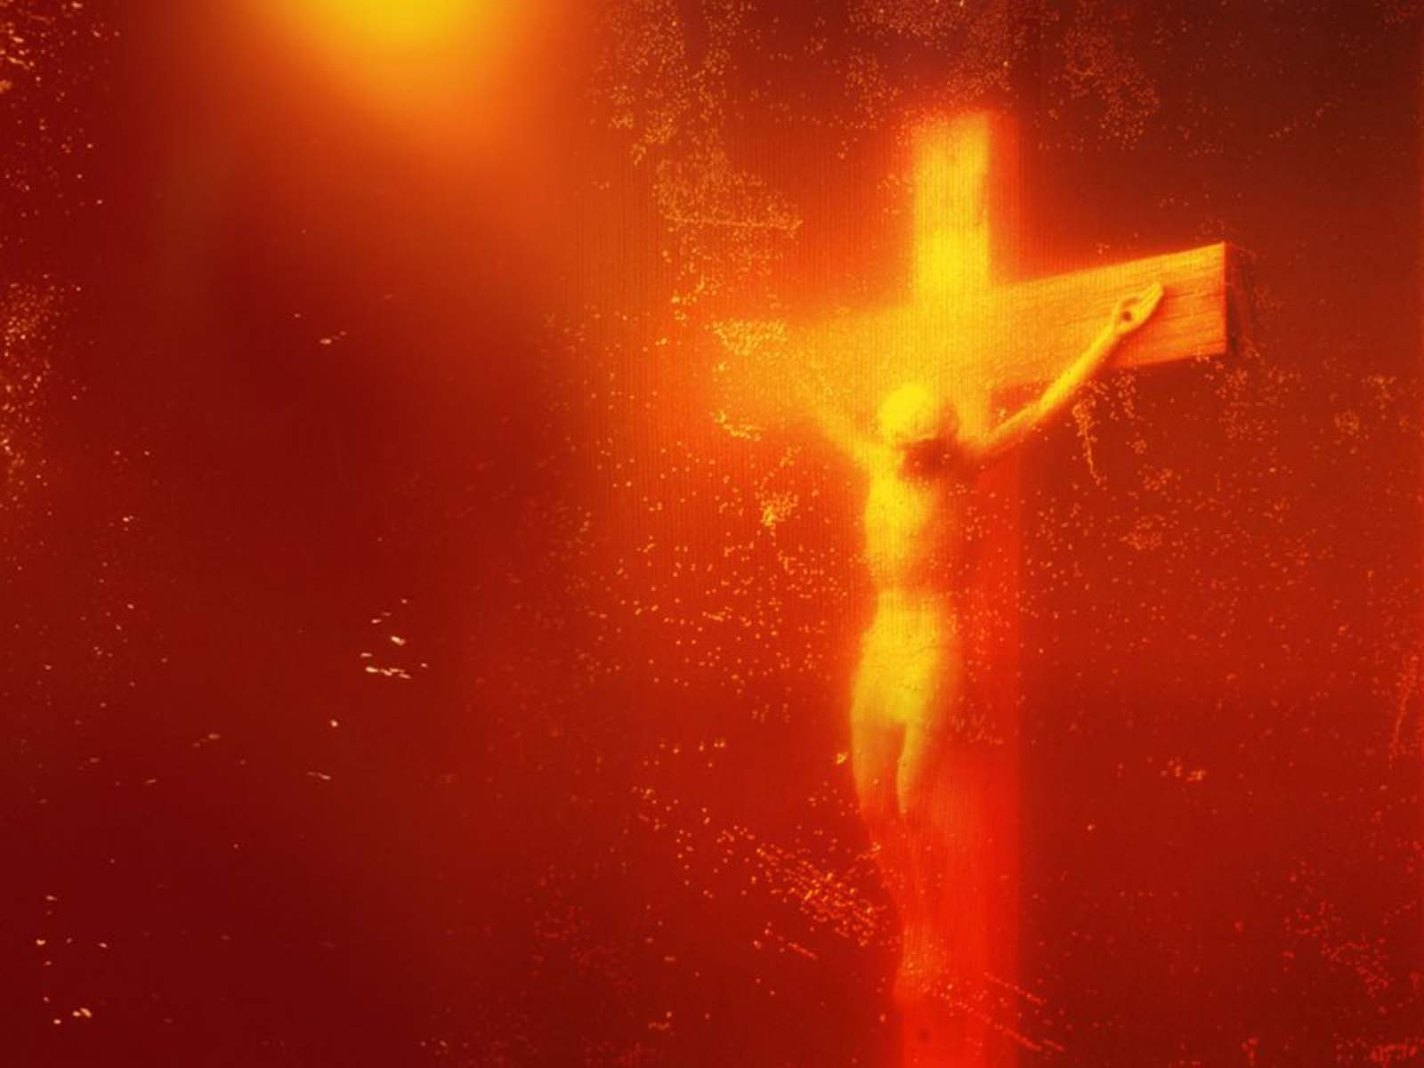 Immersions (Piss Christ), Andres Serrano, 1987